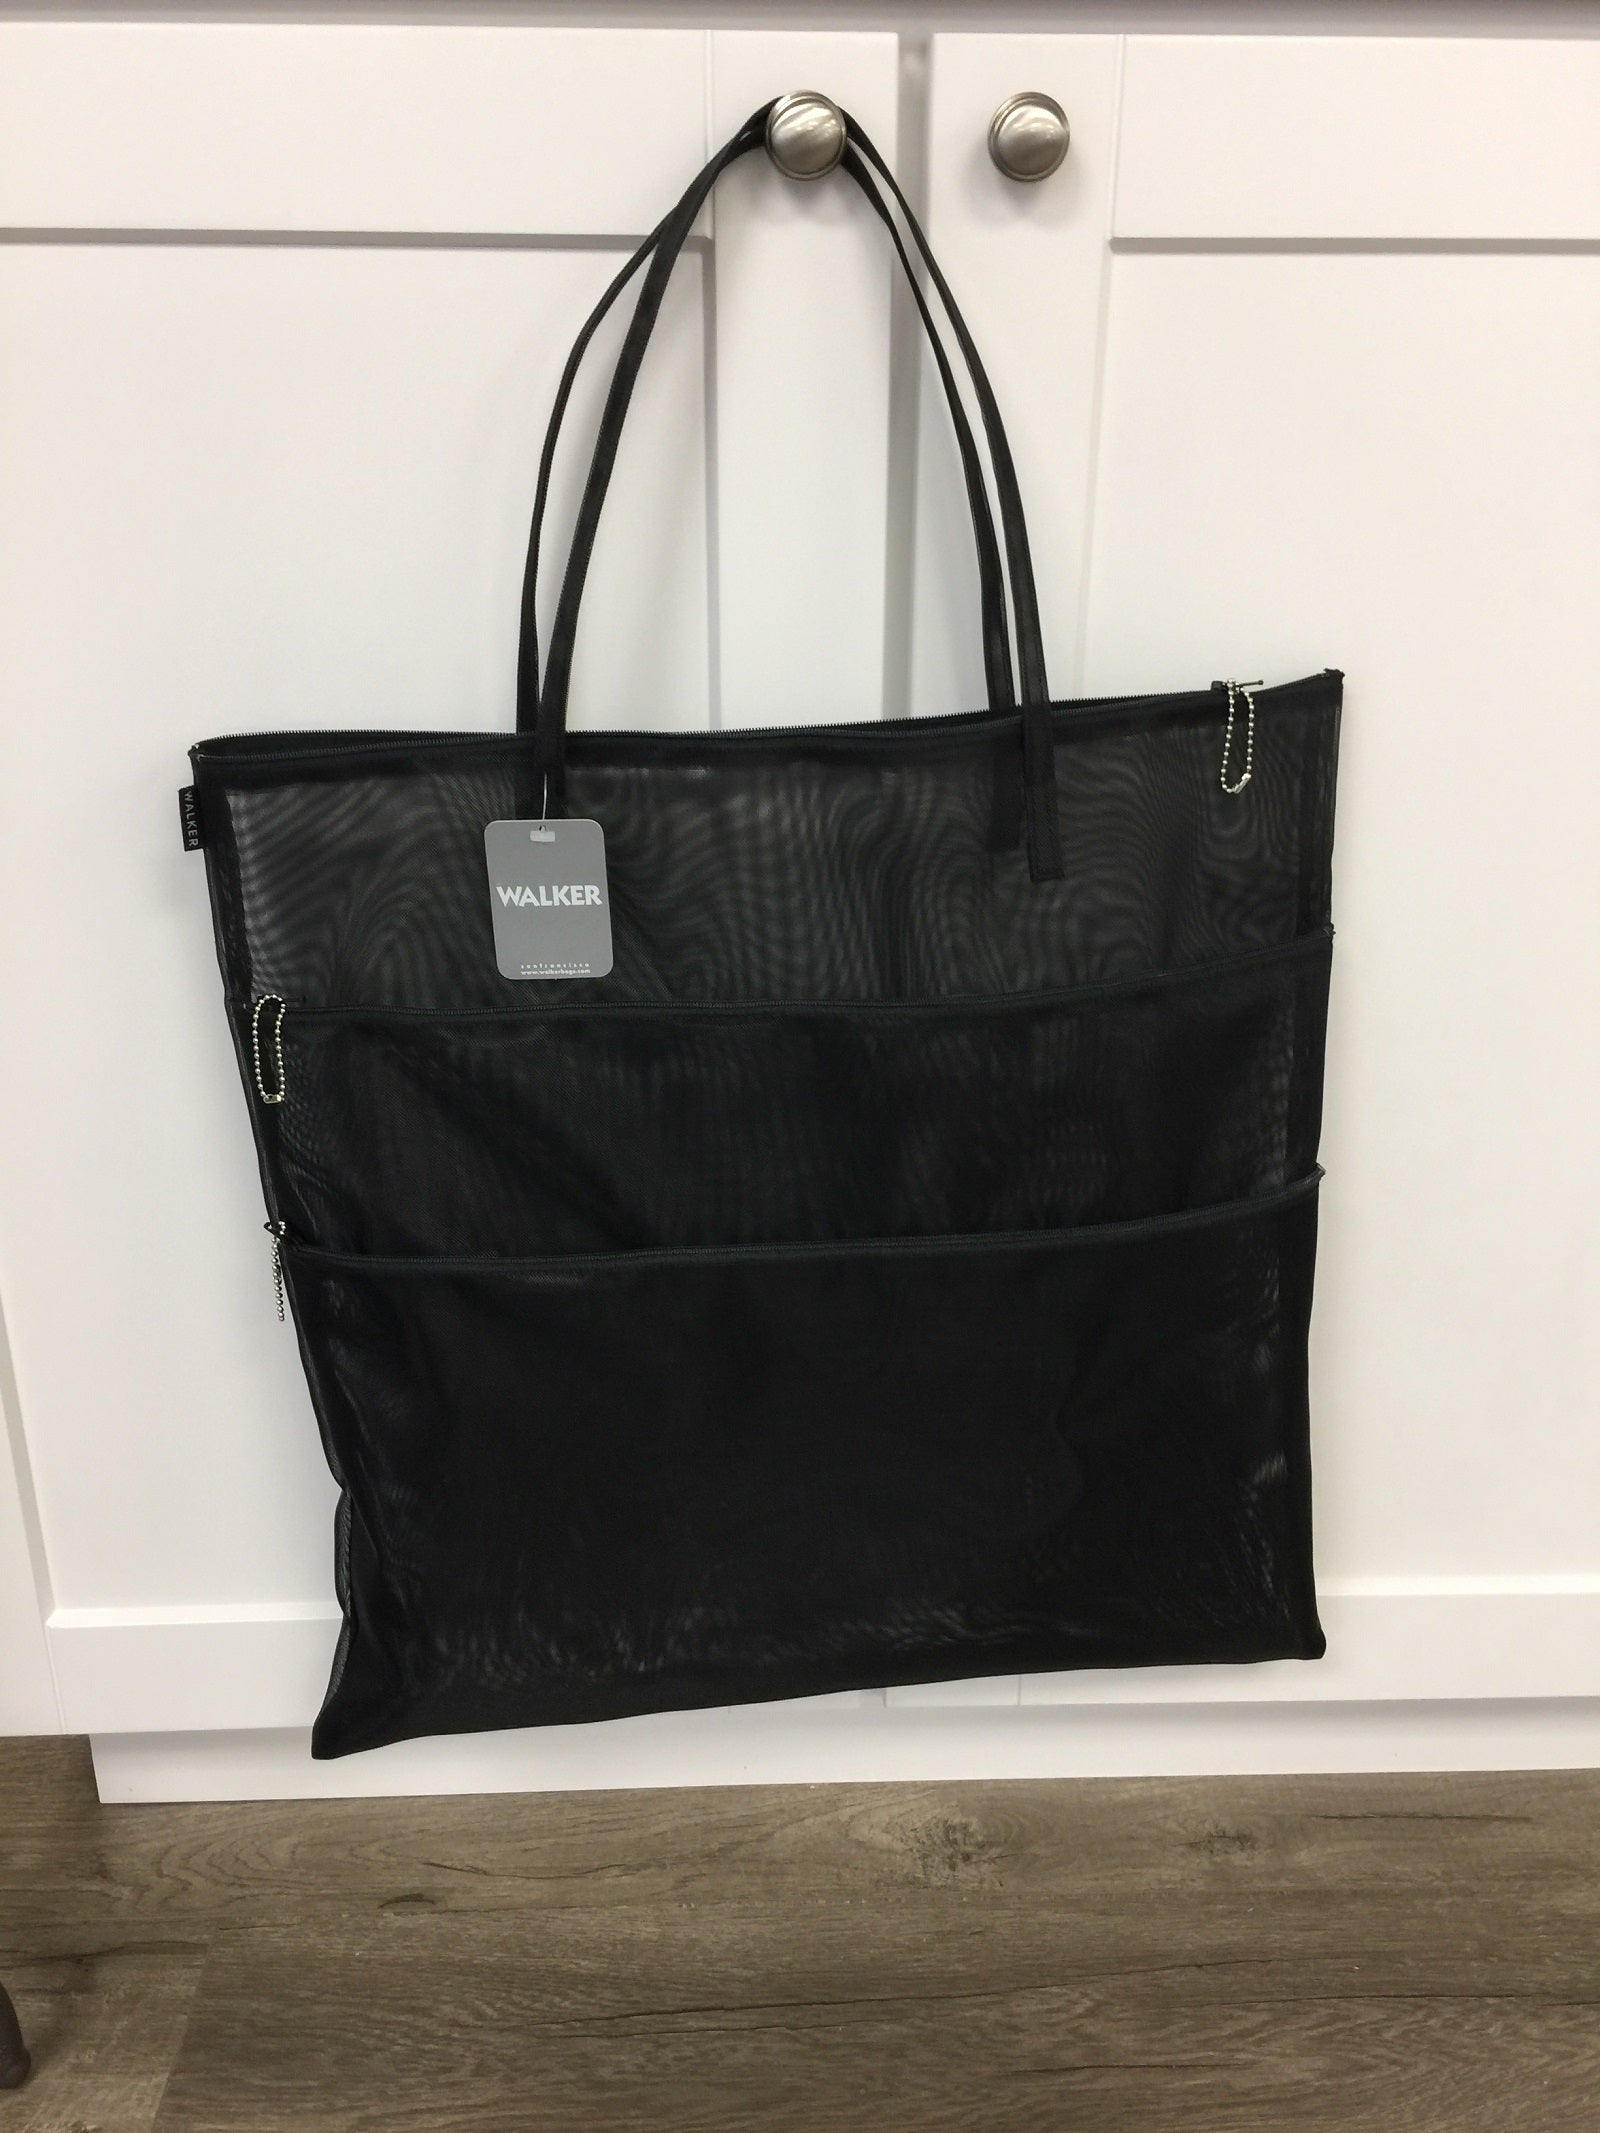 Walker Triple Zip Tote with Handles